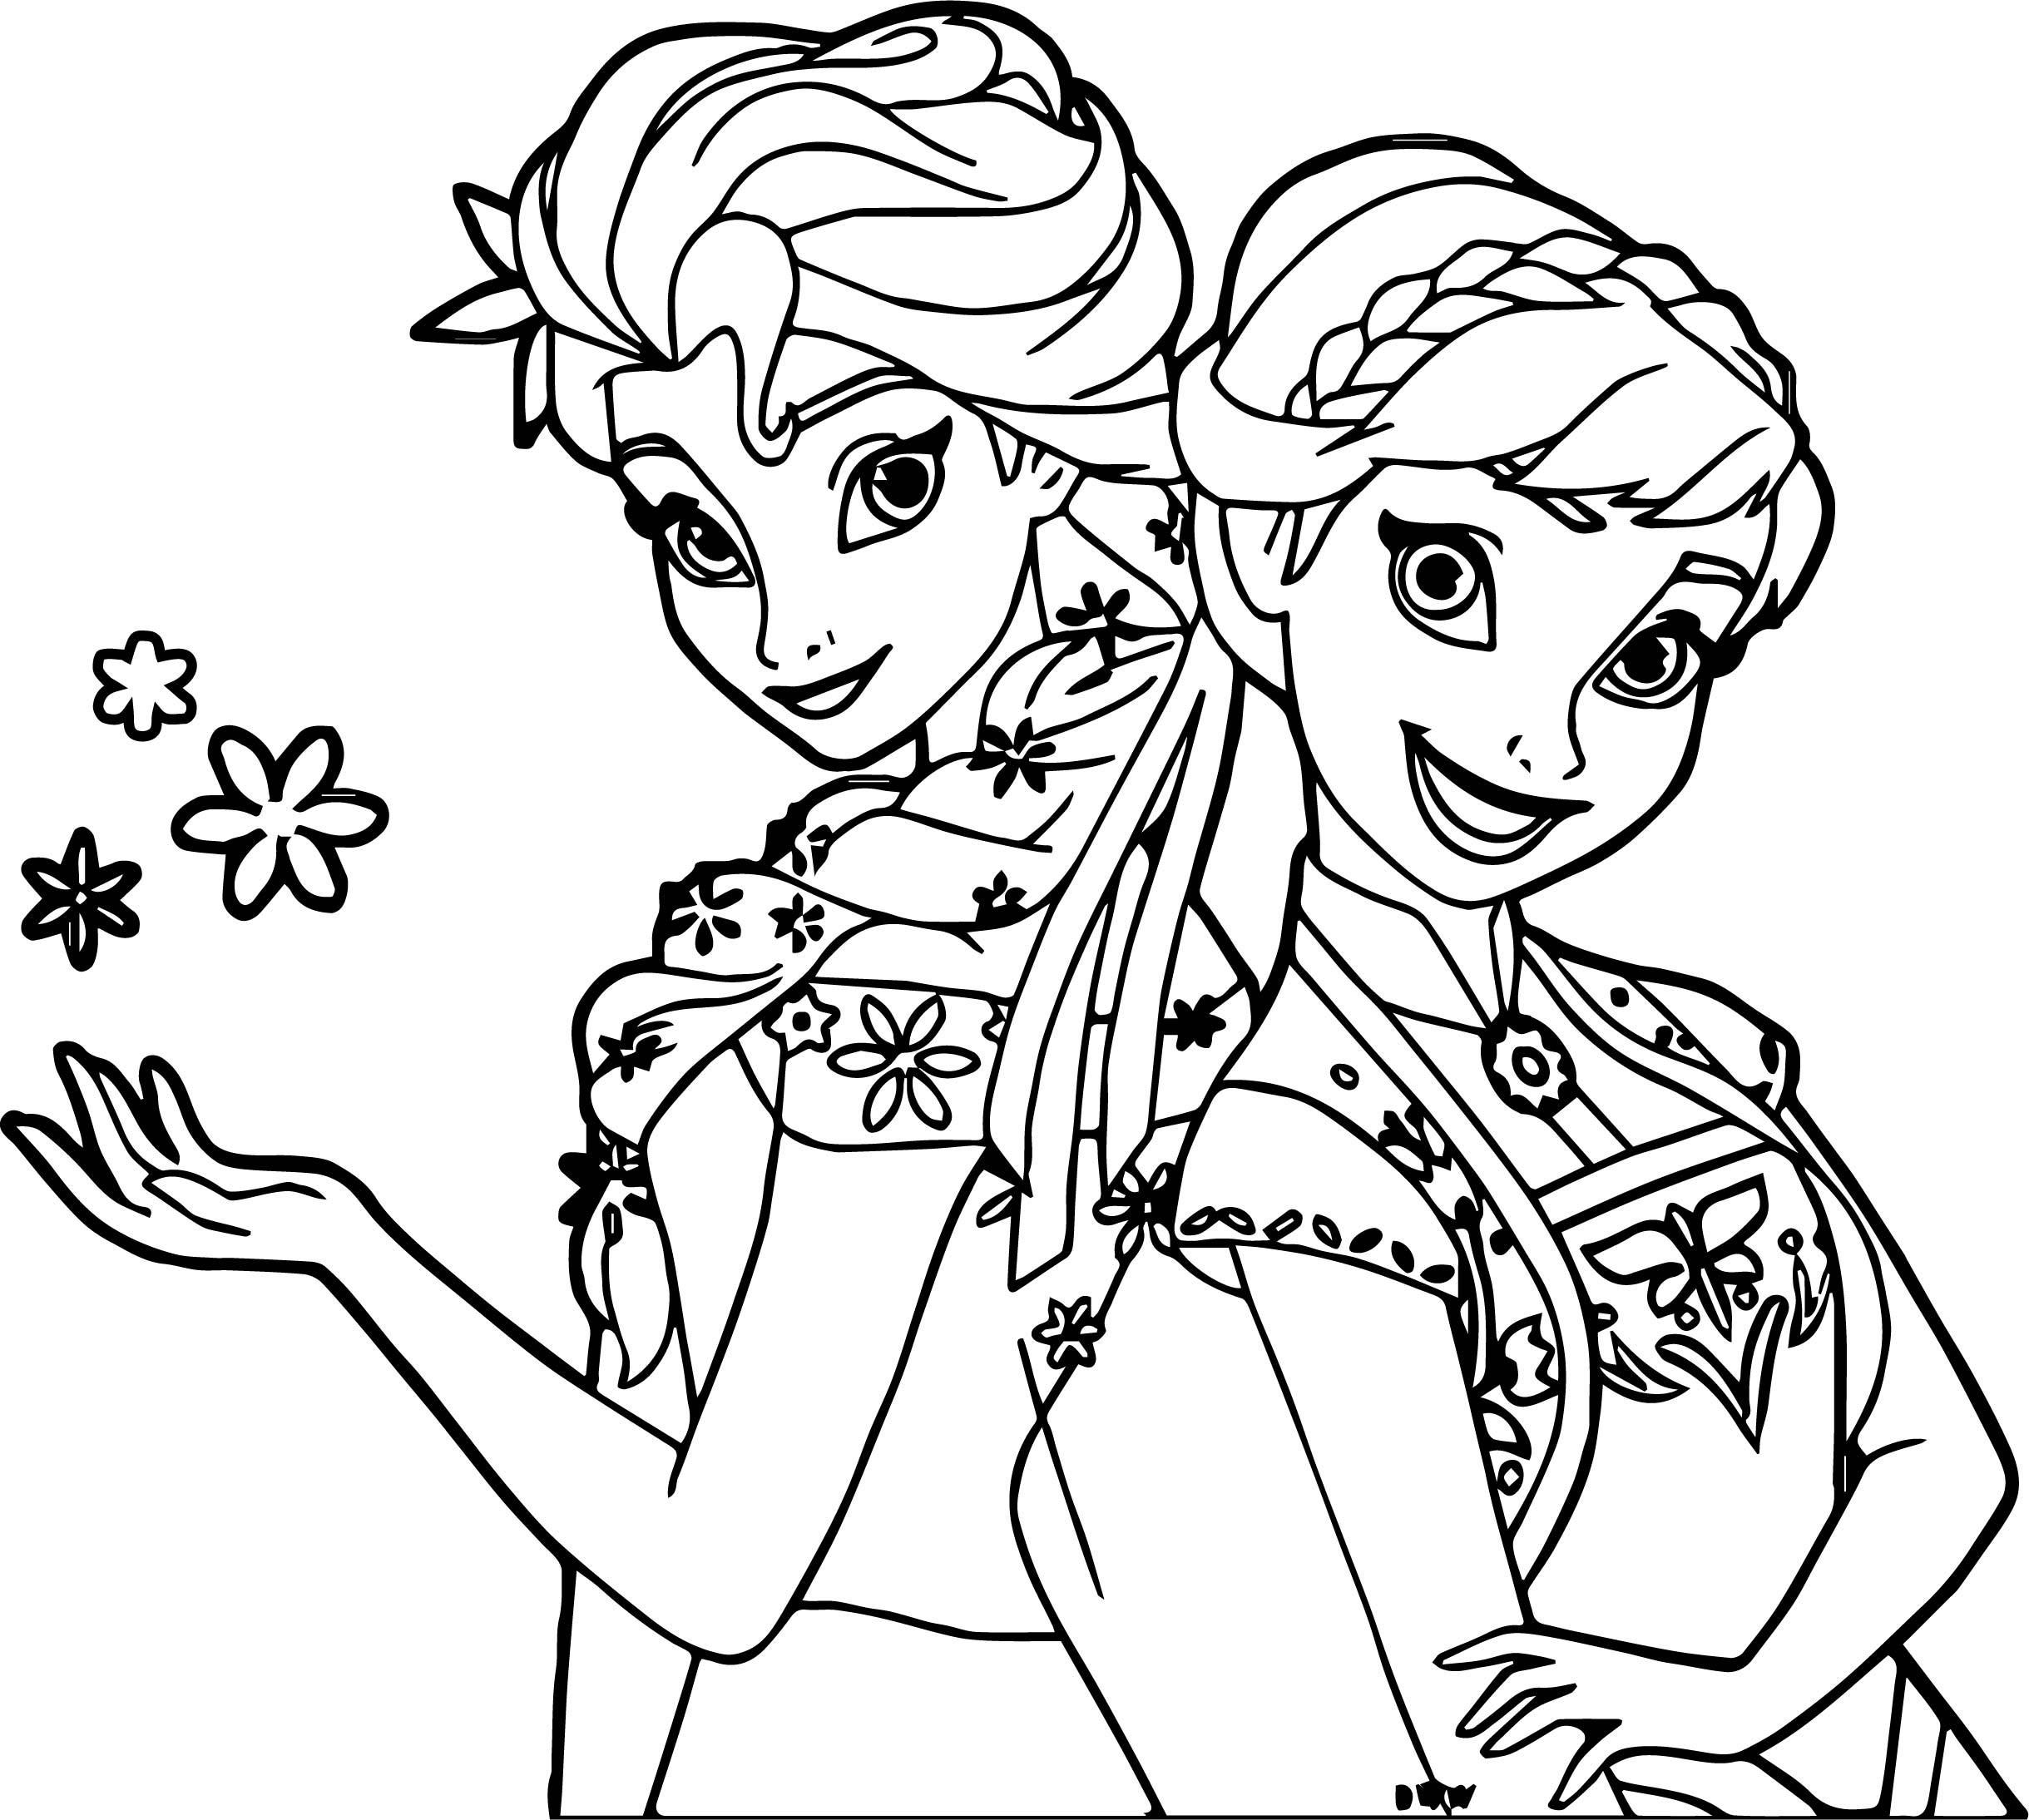 Resultat De Recherche D Images Pour صور تلوين اميرات الثلج Frozen Coloring Pages Disney Coloring Pages Elsa Coloring Pages